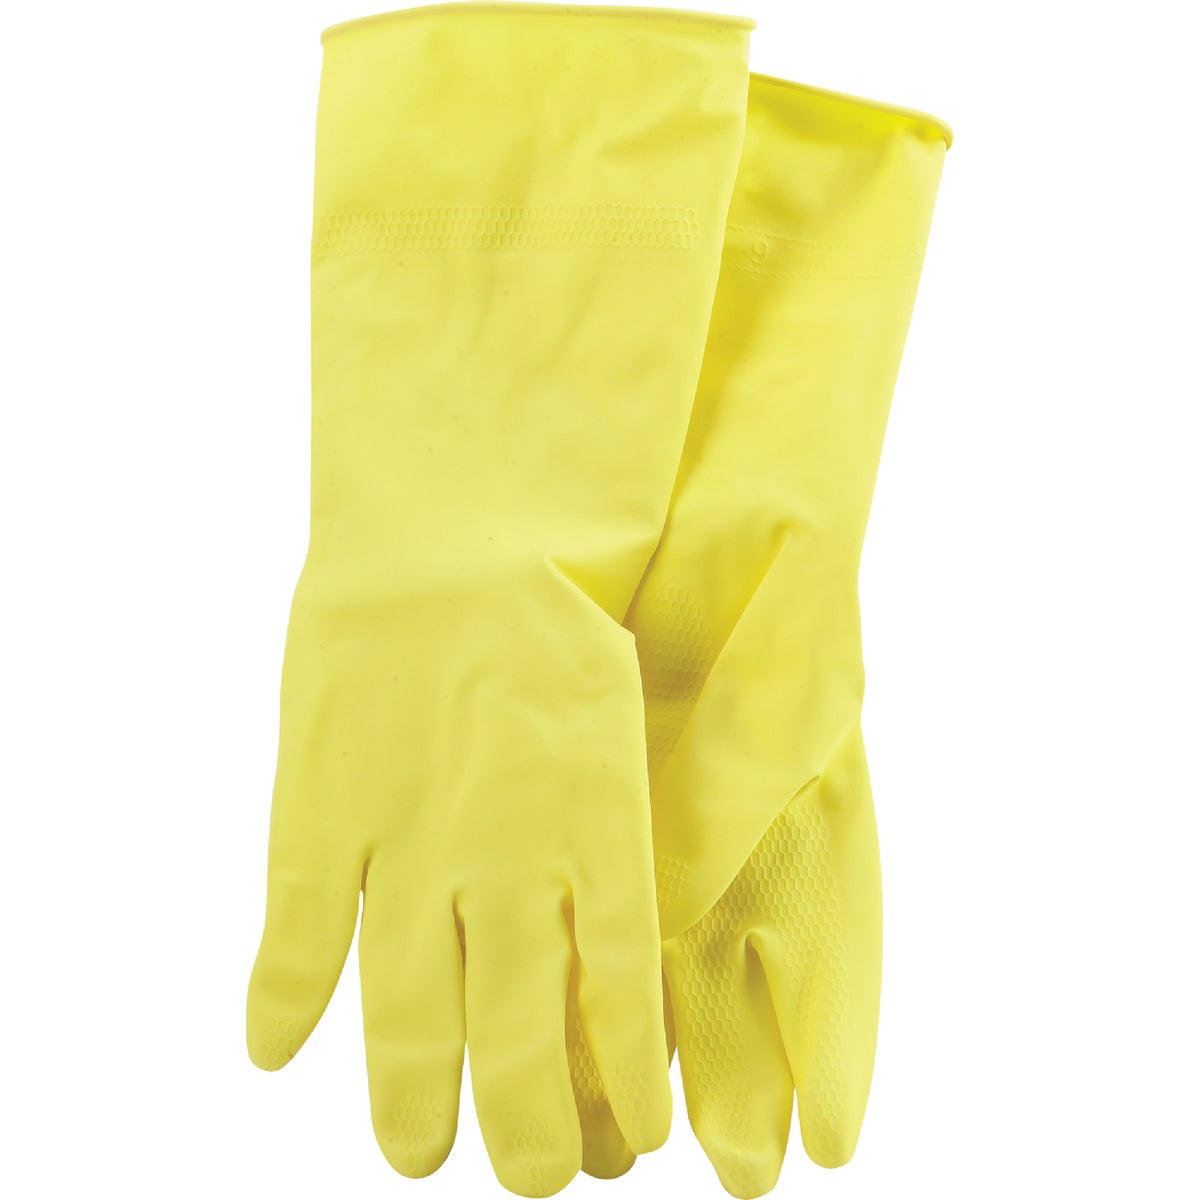 SMALL LATEX GLOVES